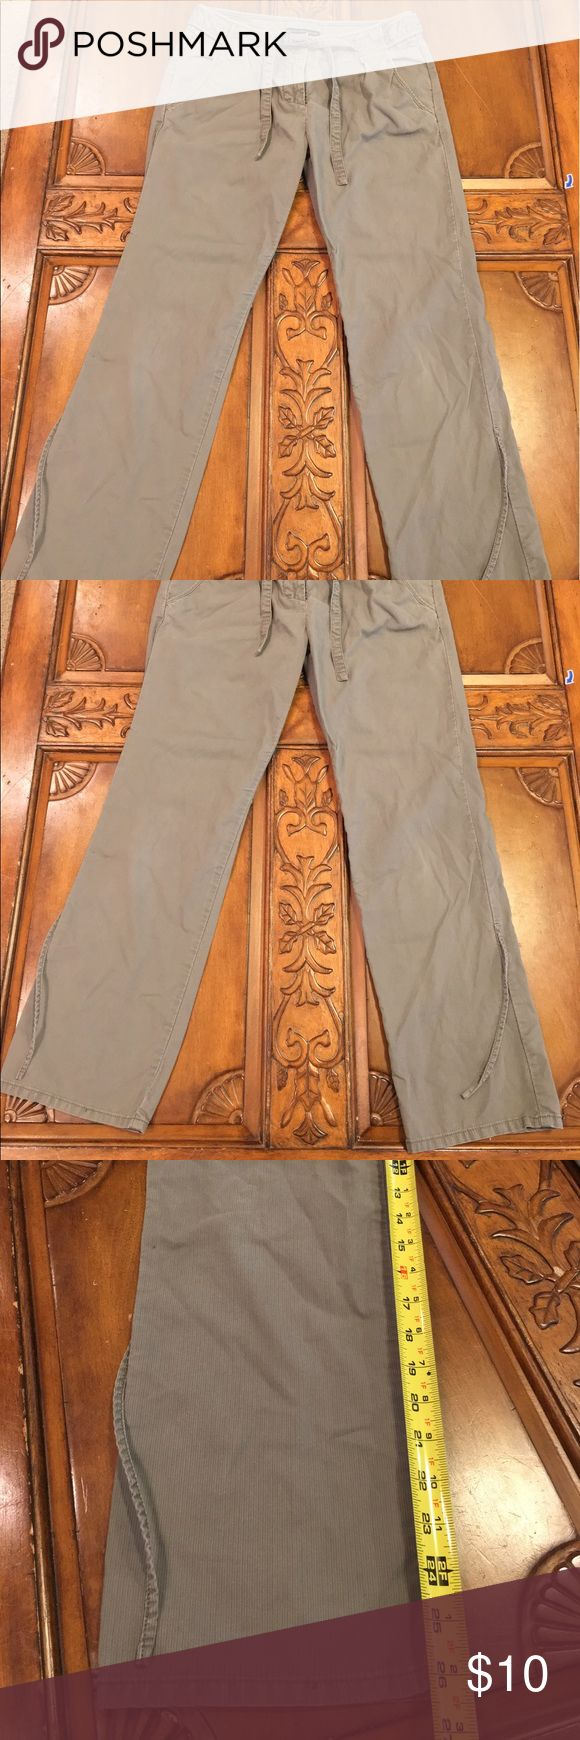 French Connection pants Taupe colored pants with a drawstring around the waist and adjustable legs. French Connection Pants Trousers